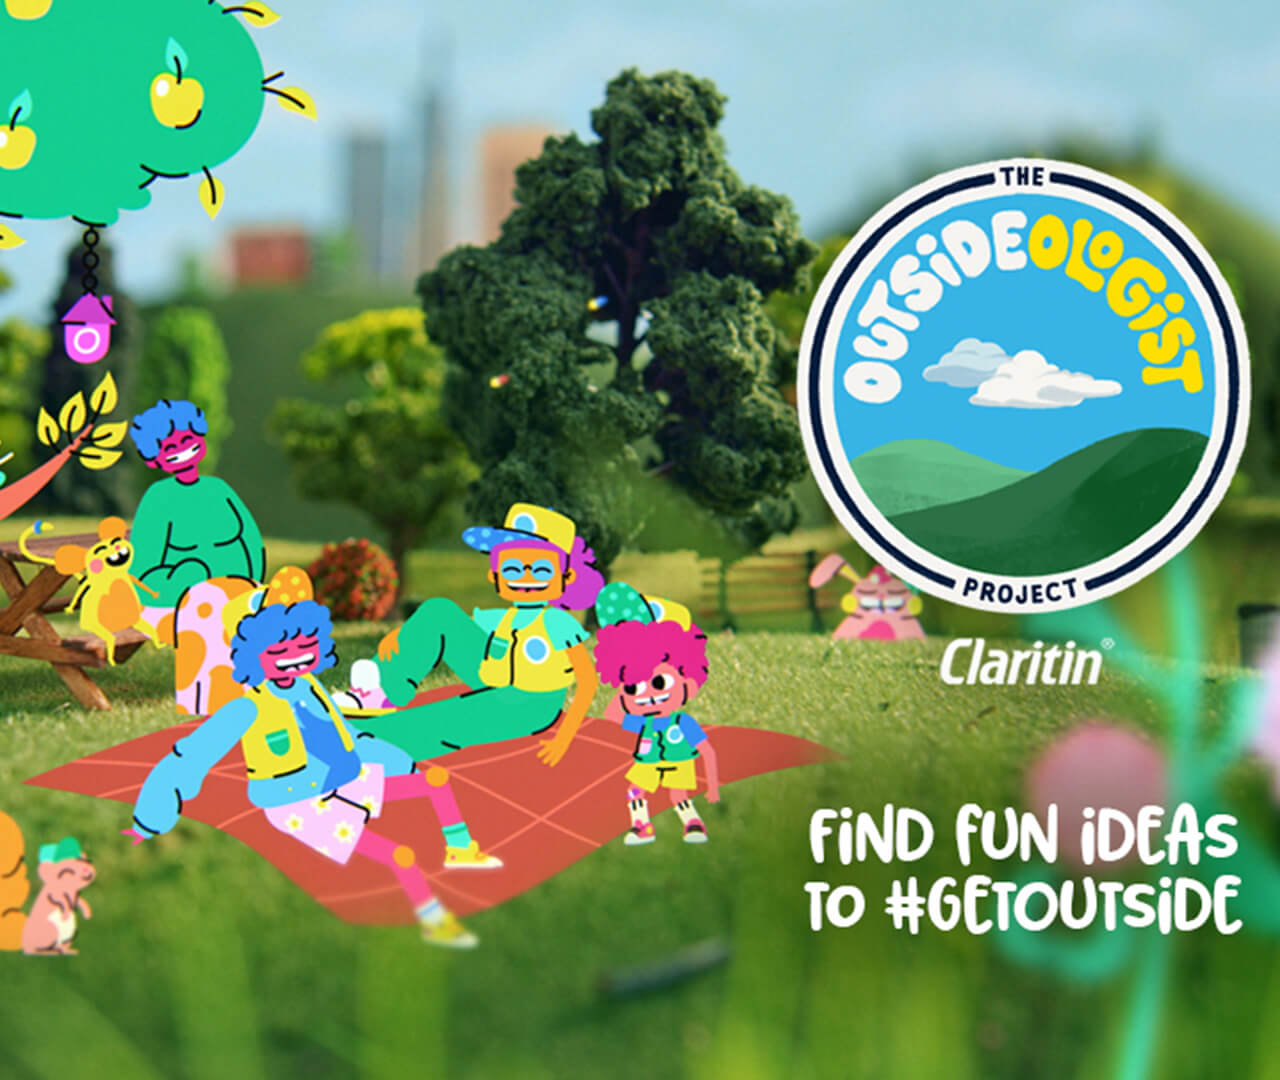 Why Claritin is Campaigning to Get Children Outside